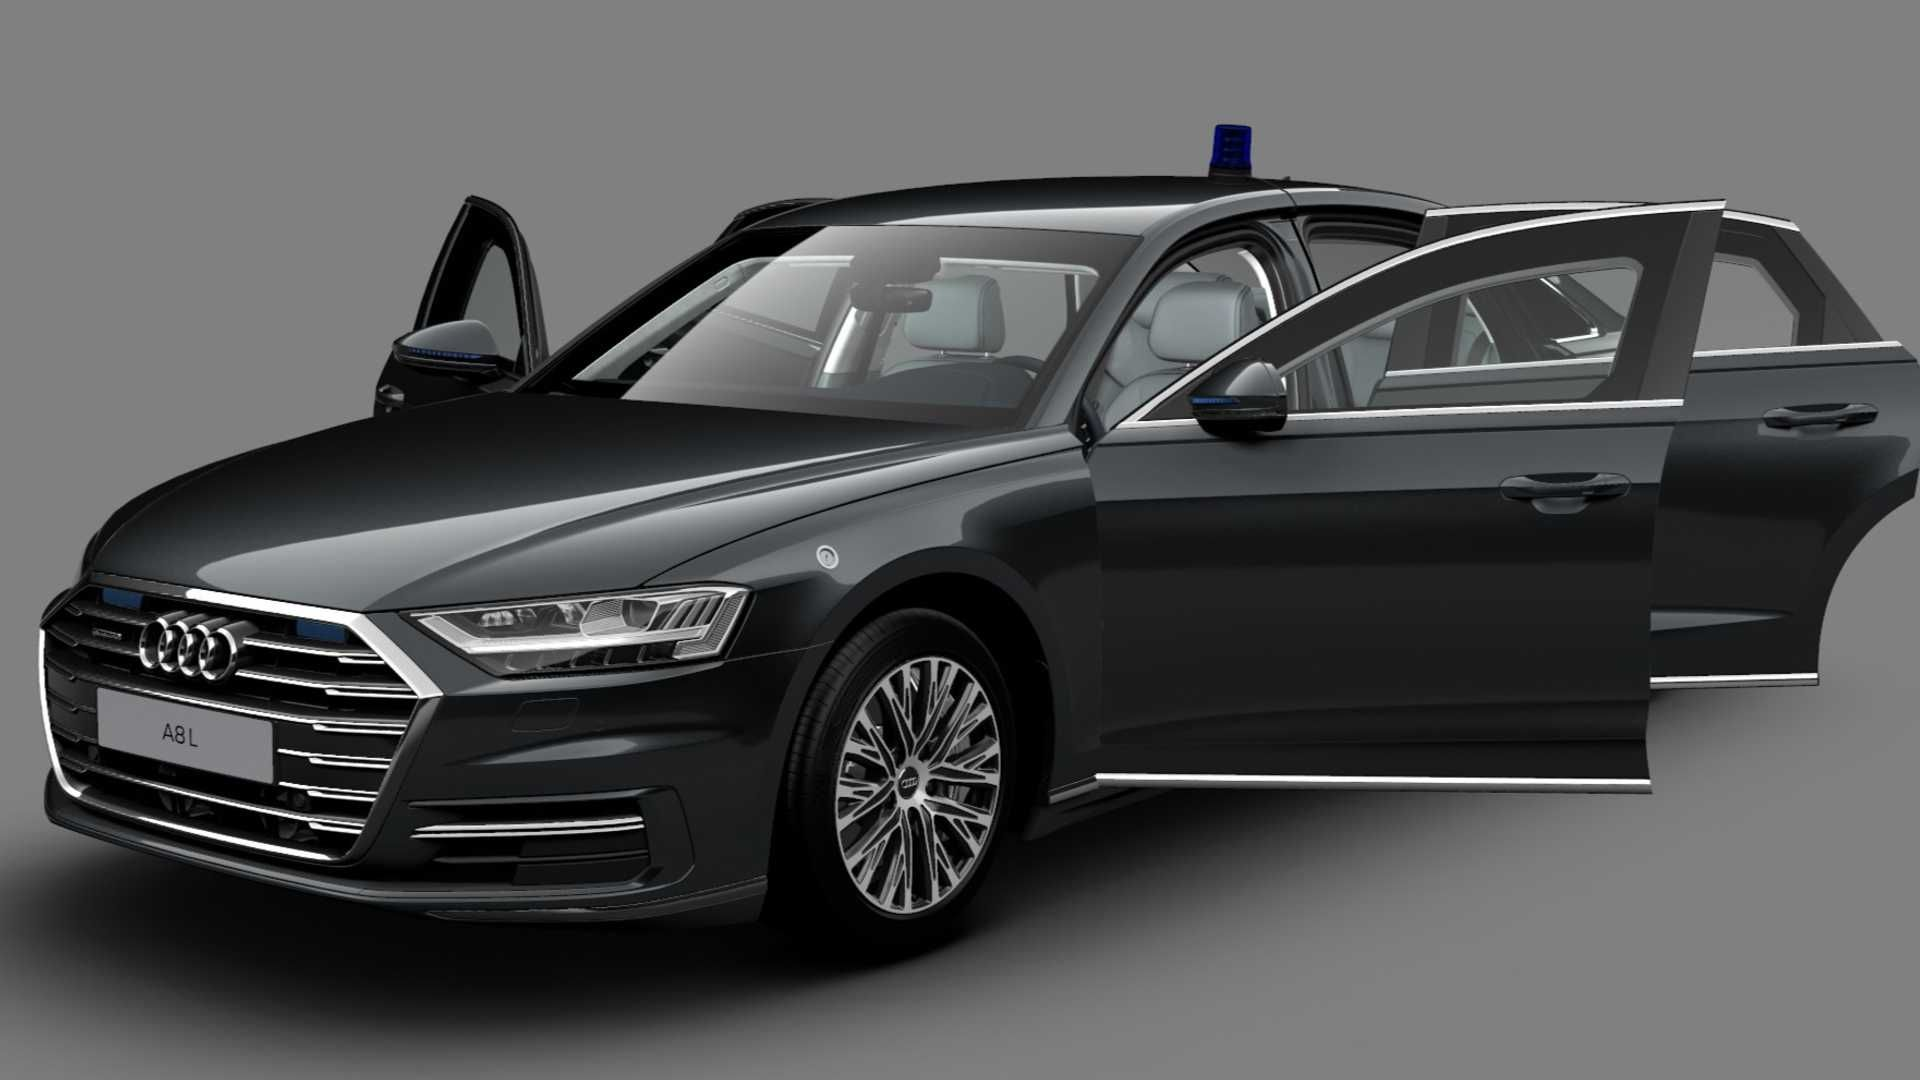 Audi A8 Price and Review